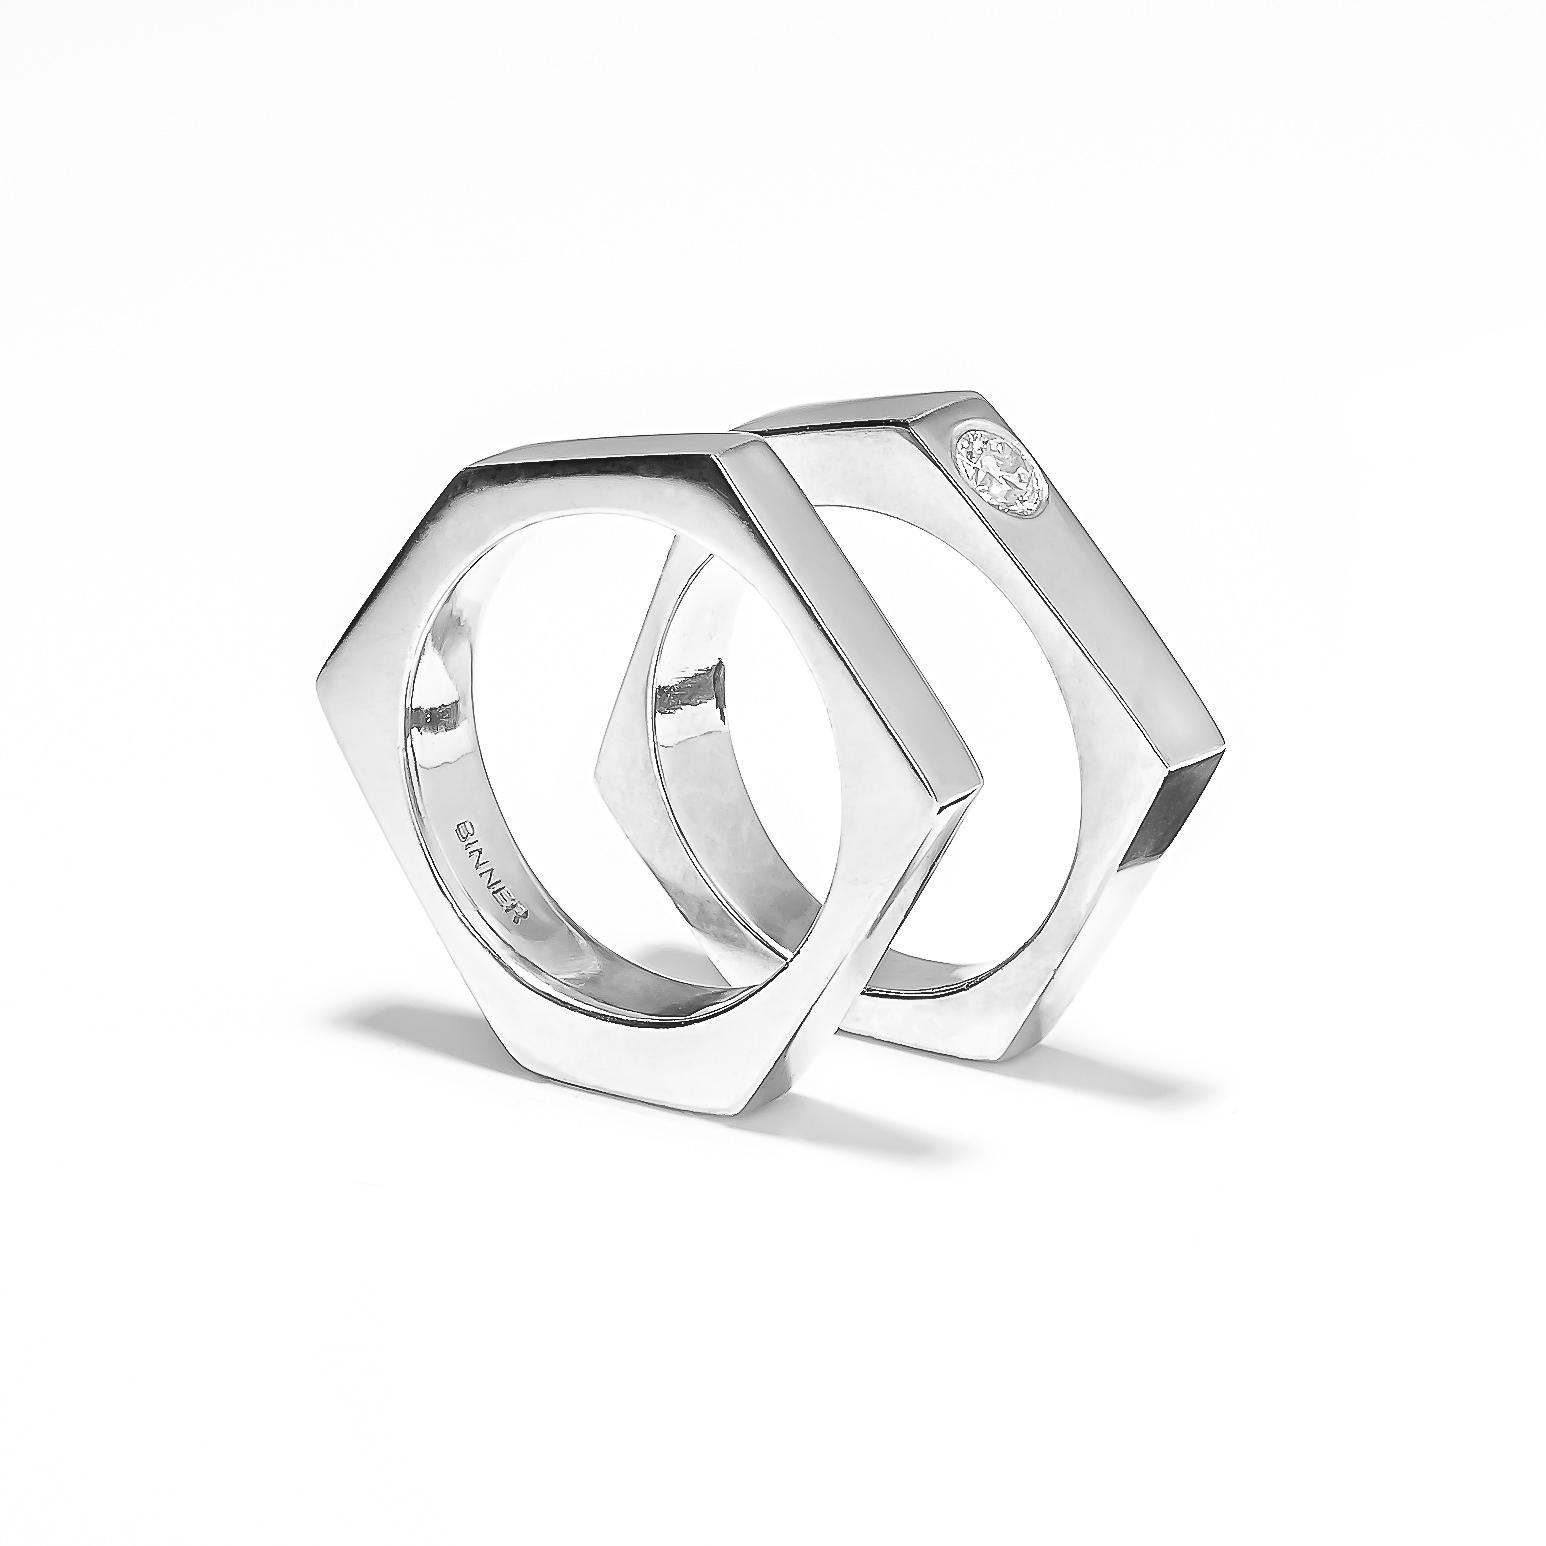 CUTS jewelry designed by Bodil Binner and Lars Vejen